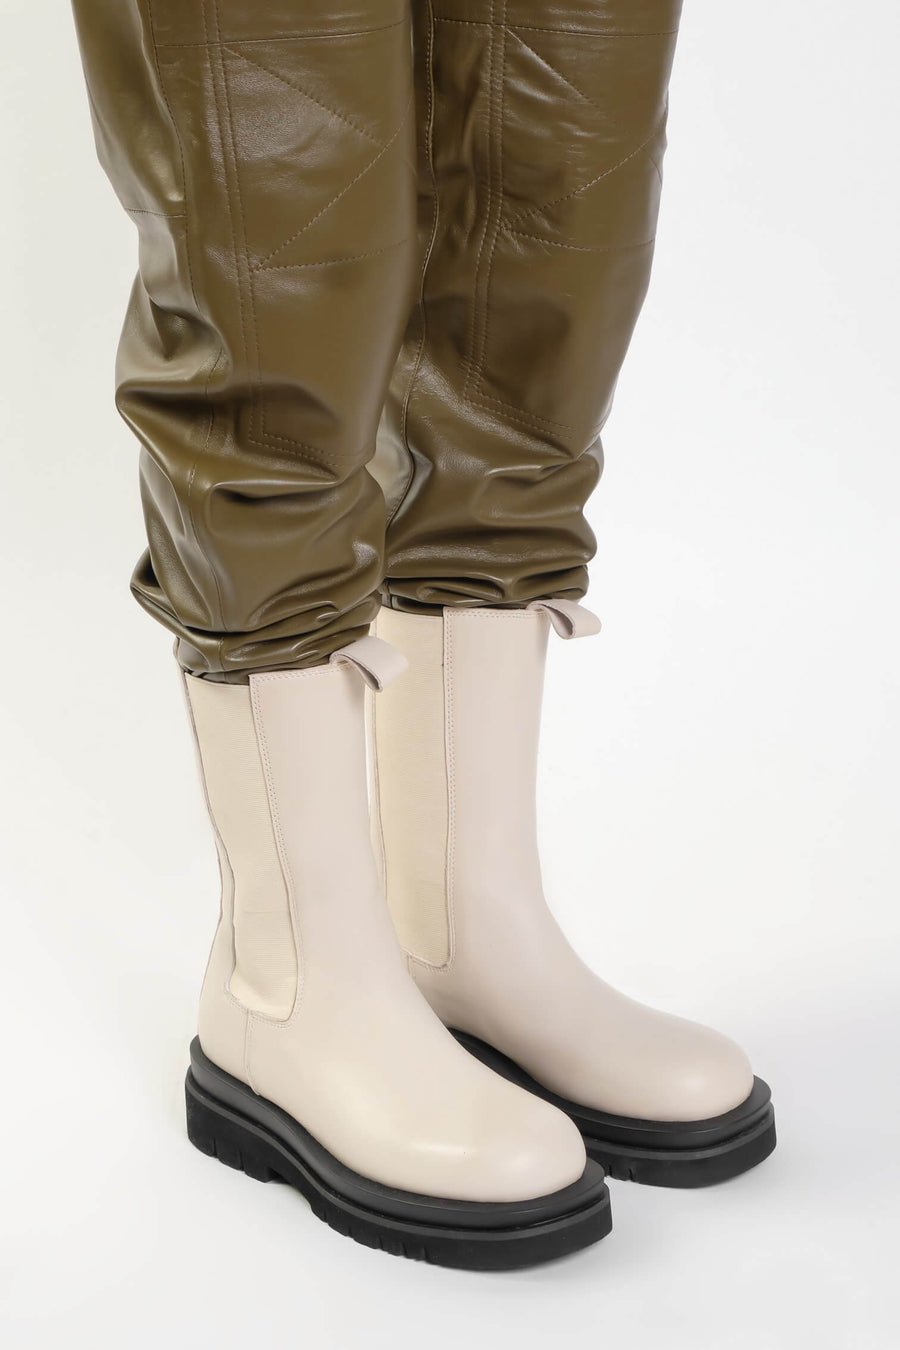 Ducie London Kendall Short Boot in Stone from The New Trend